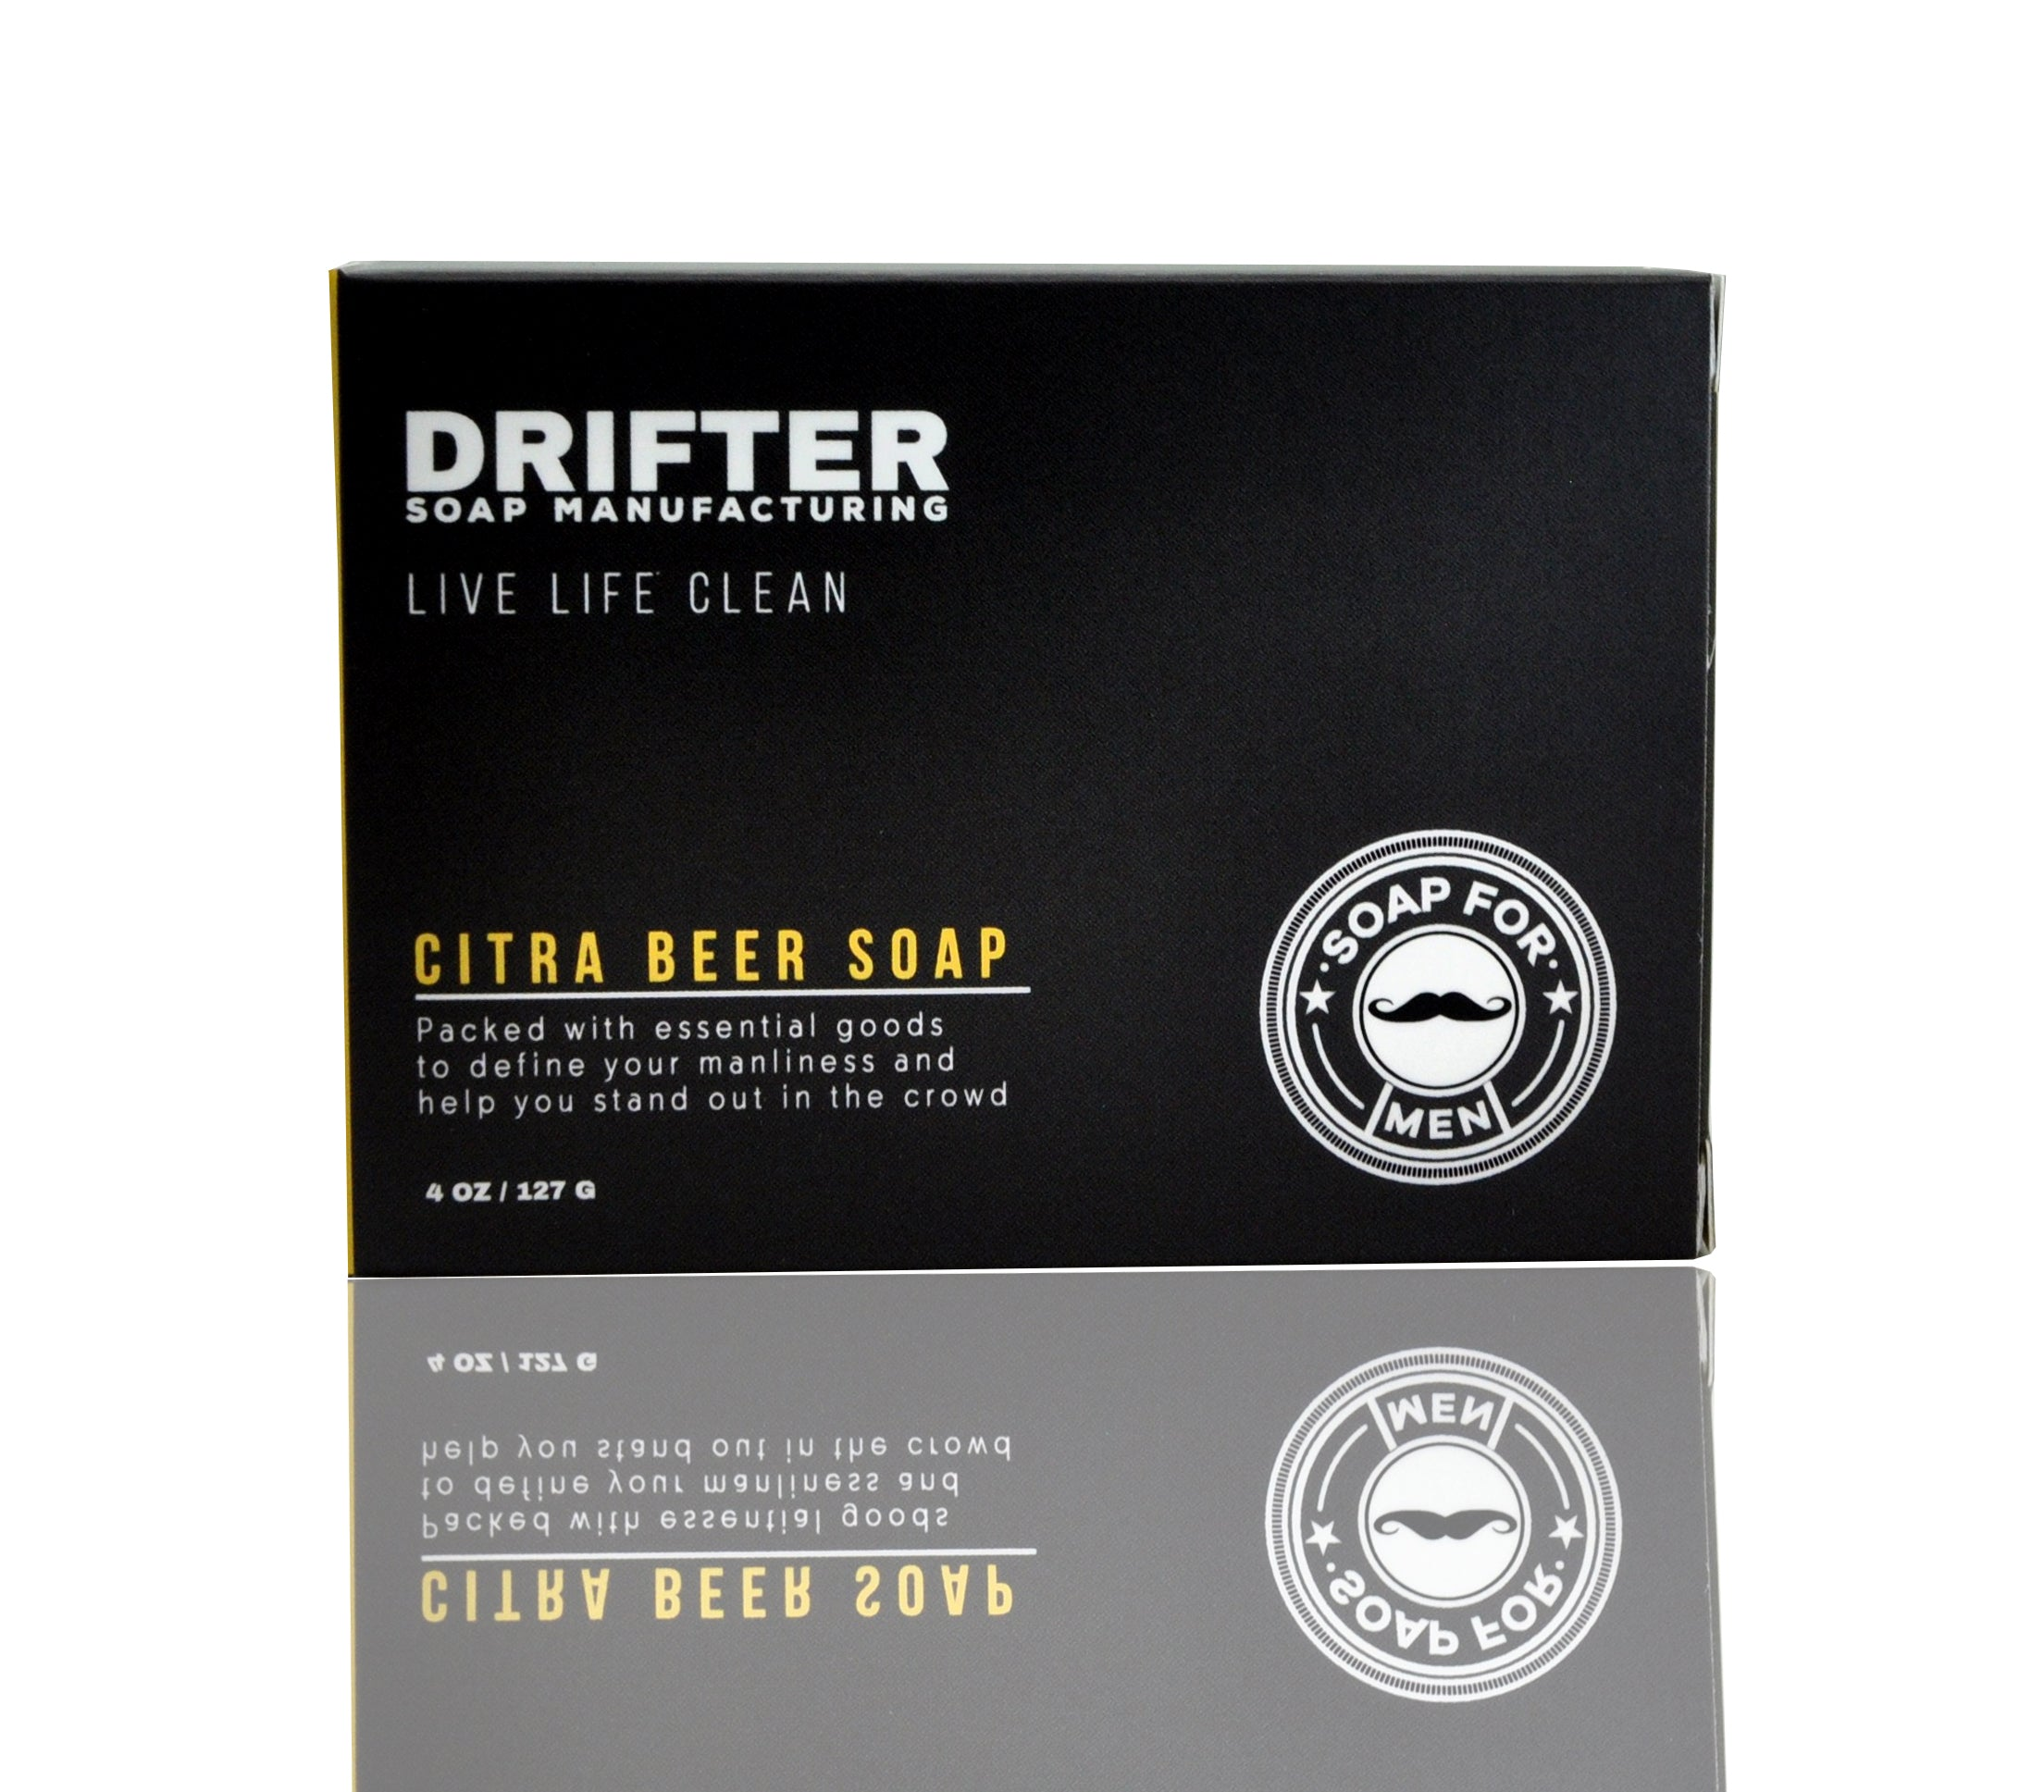 Citra Beer Soap